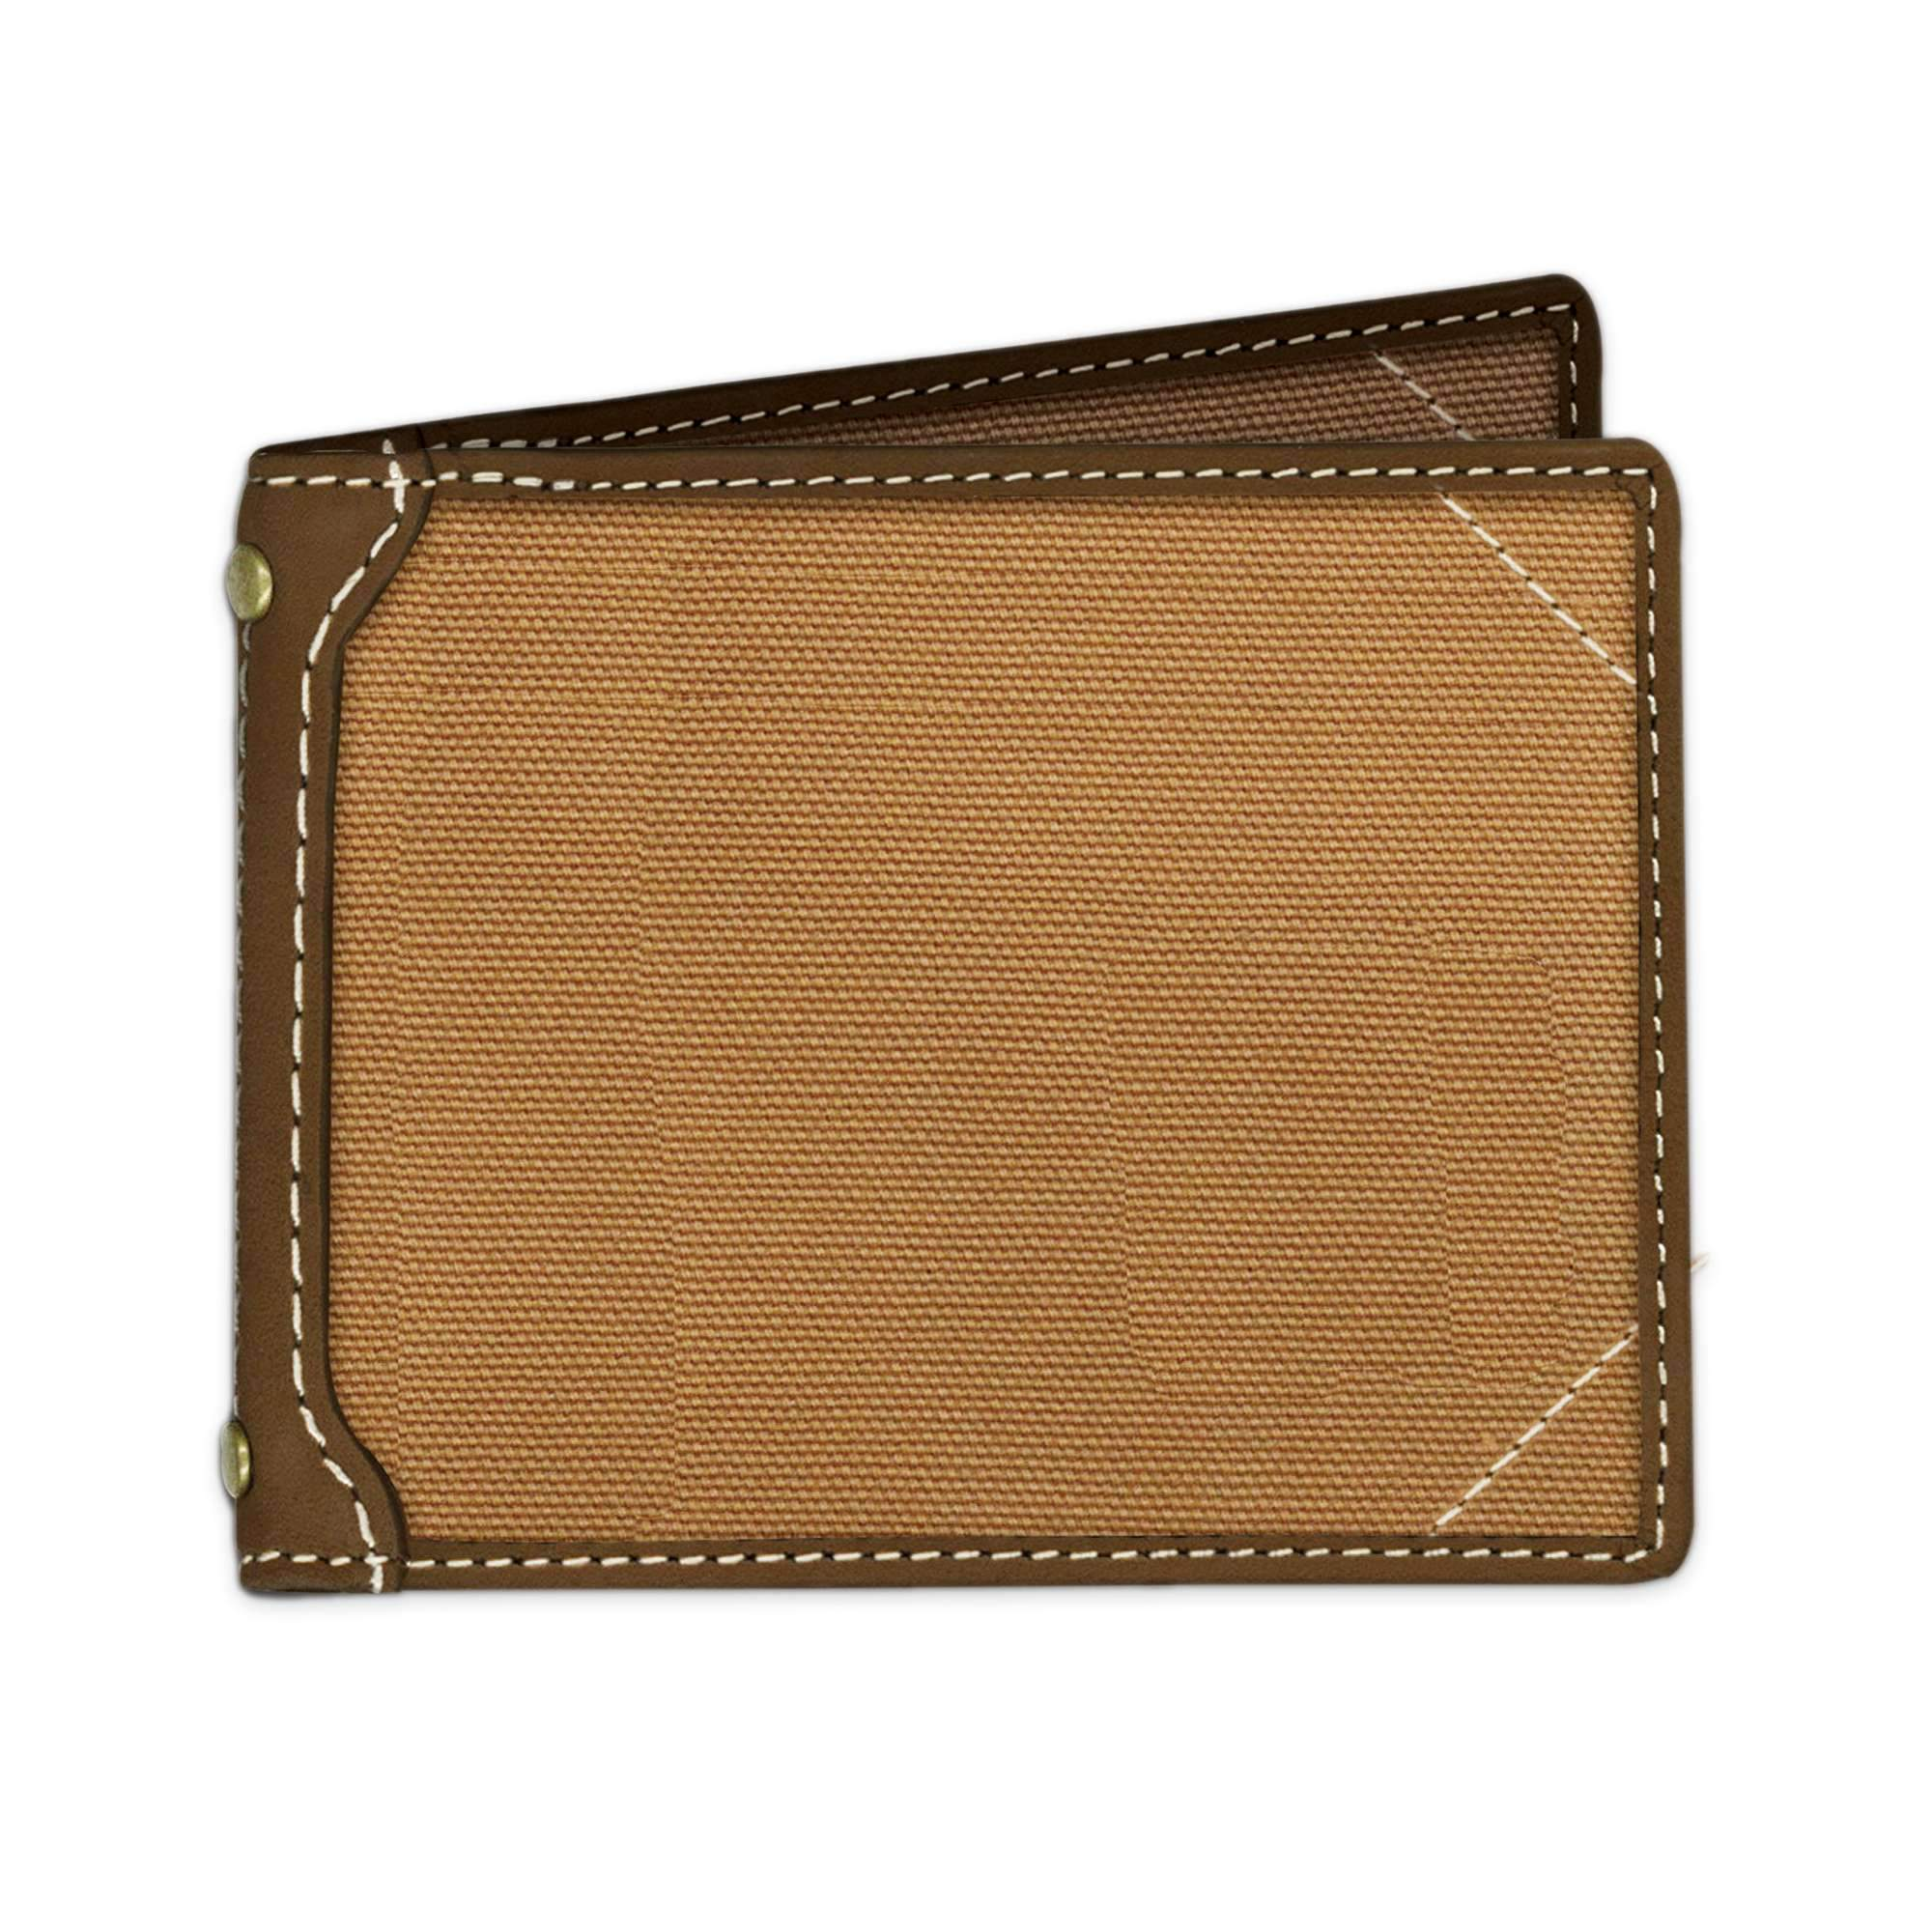 Carhartt Canvas Passcase Wallet